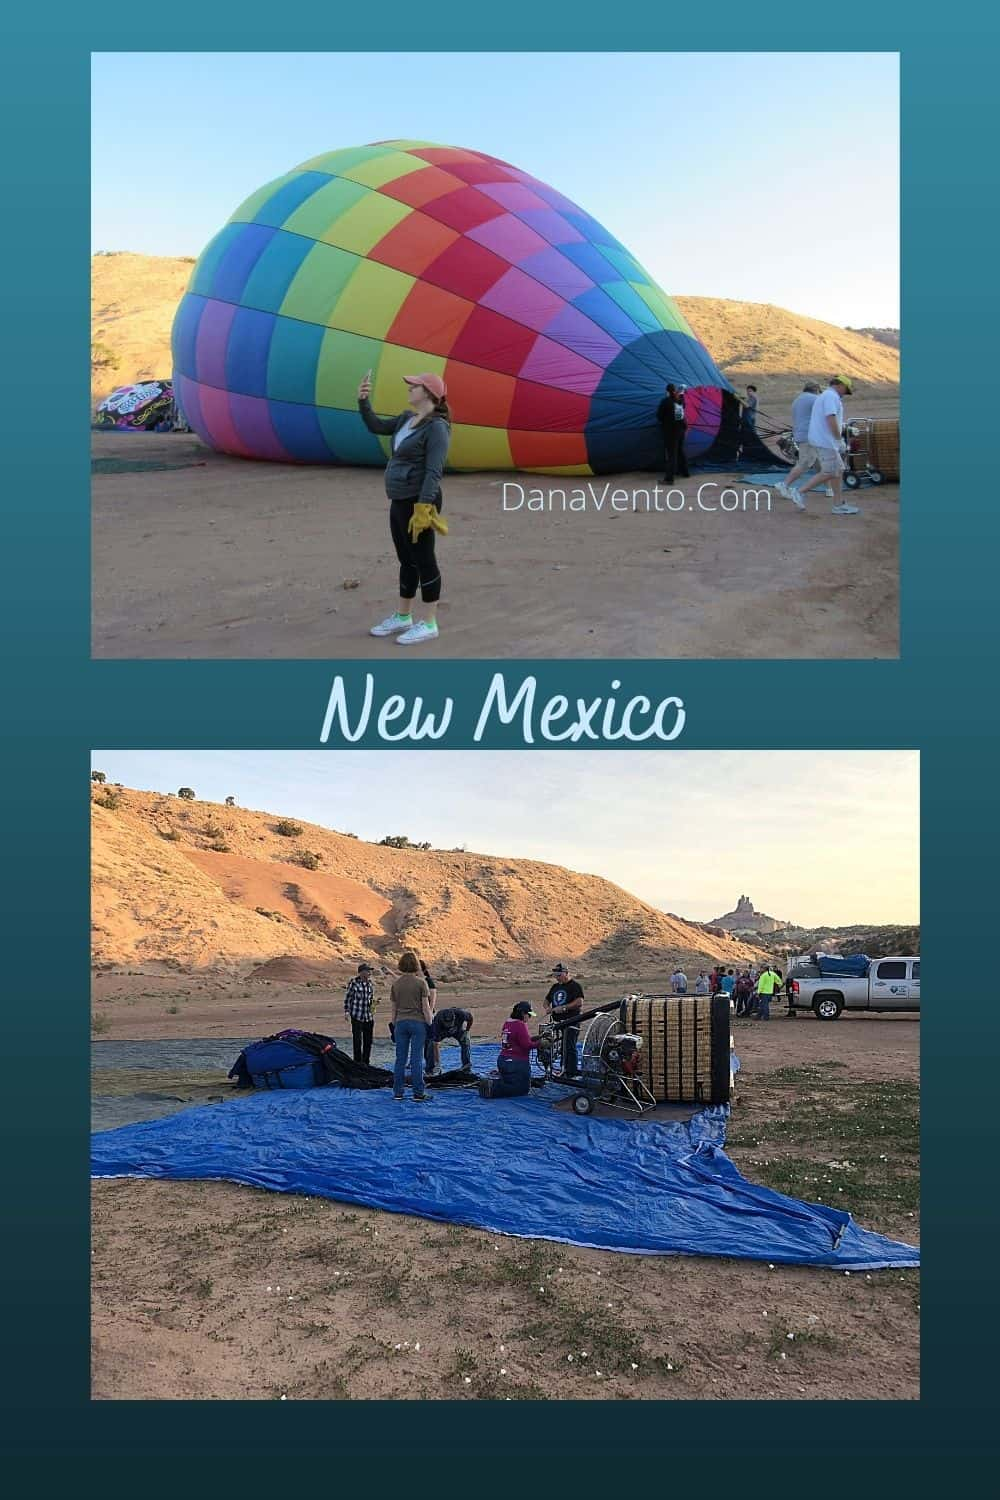 New Mexico at balloons dressed with jackets and pants